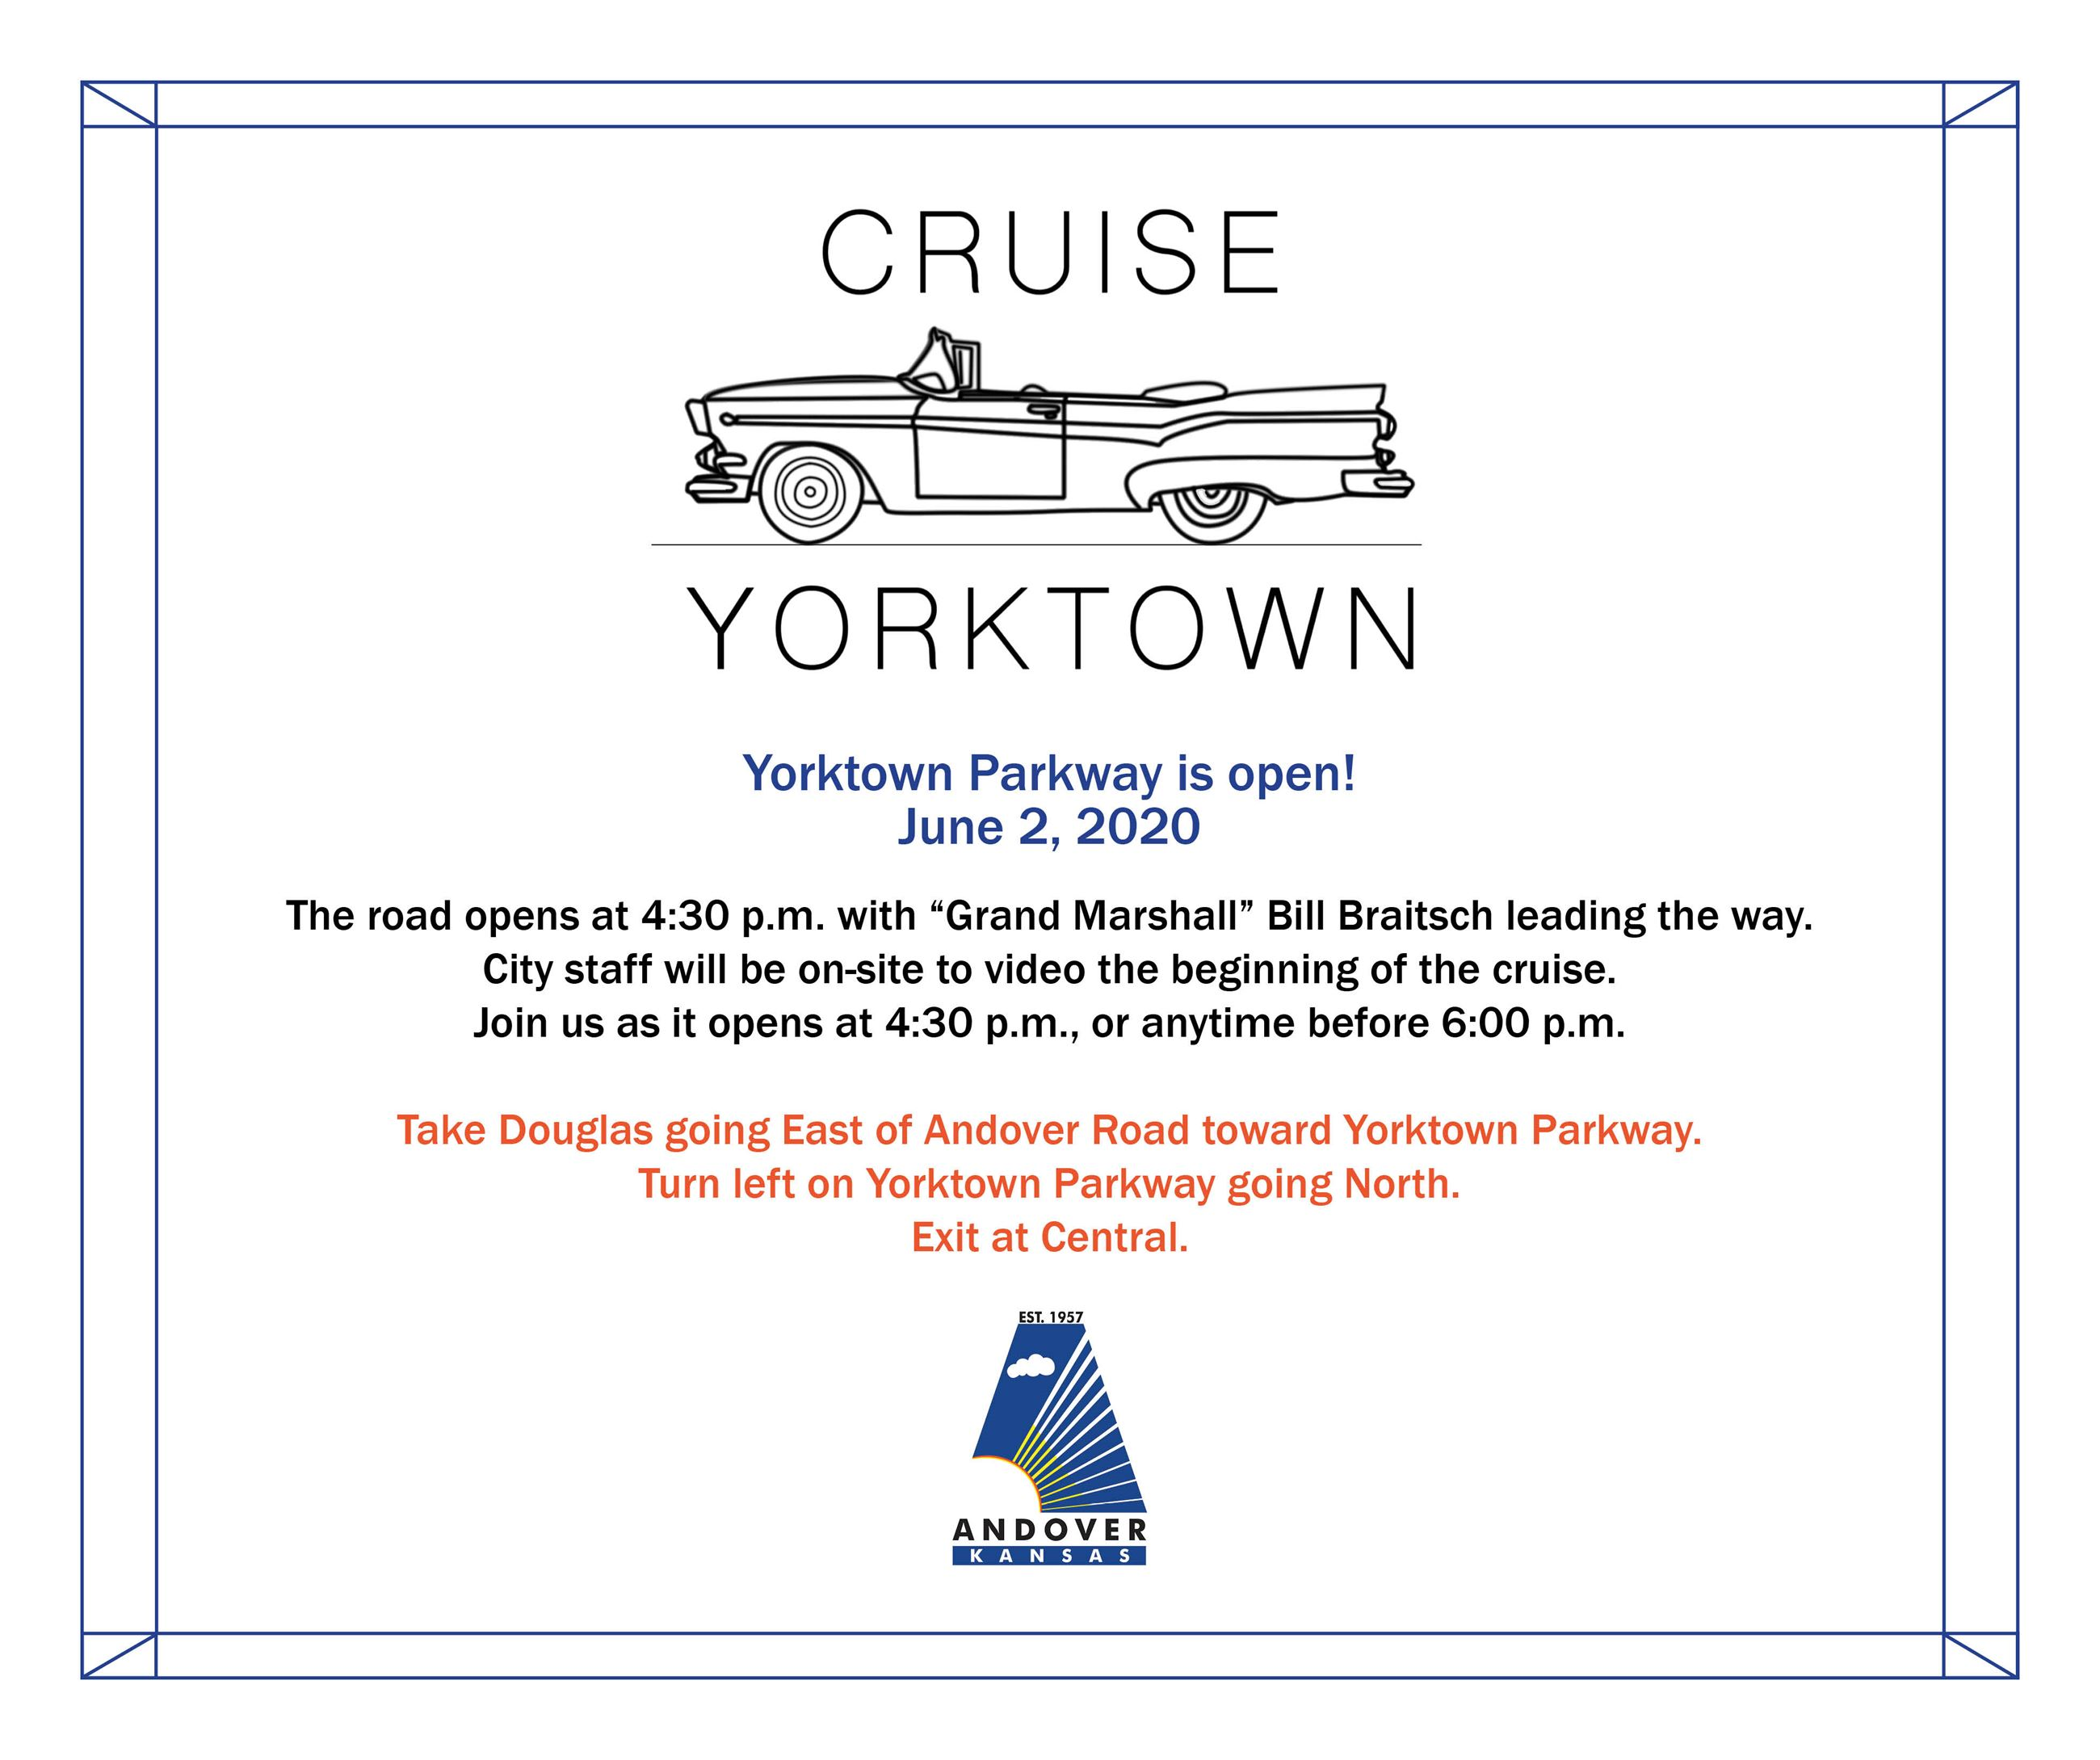 Yorktown Cruise June 2 at 4:30 pm